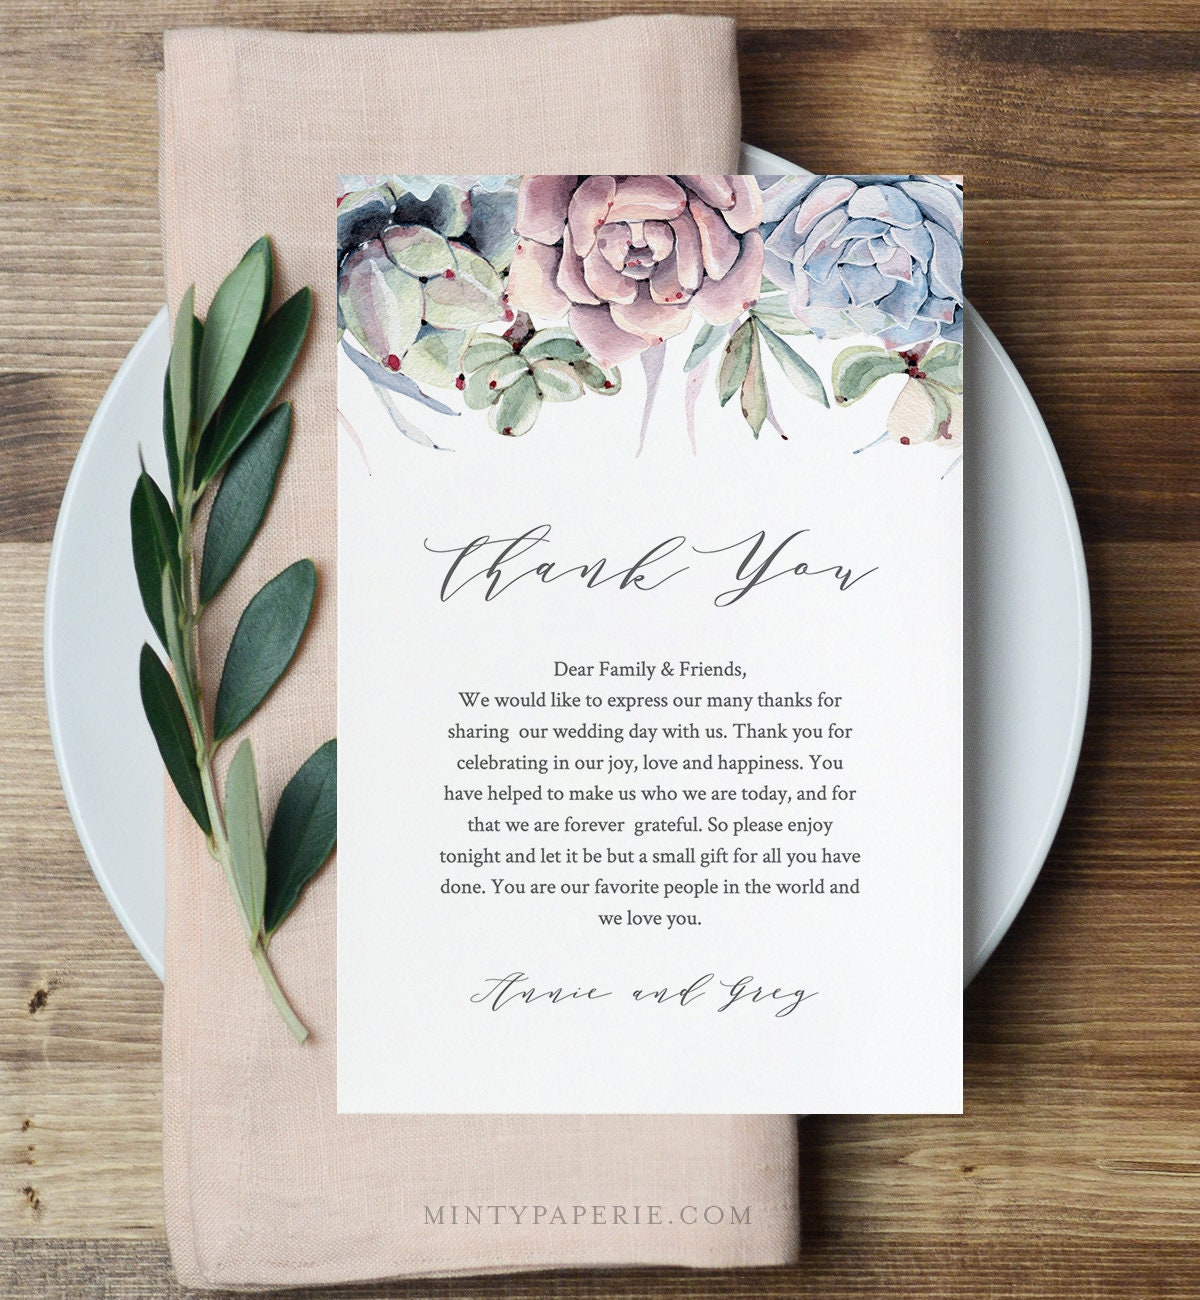 Succulent Wedding Thank You Letter Napkin Note In Lieu Of Favor